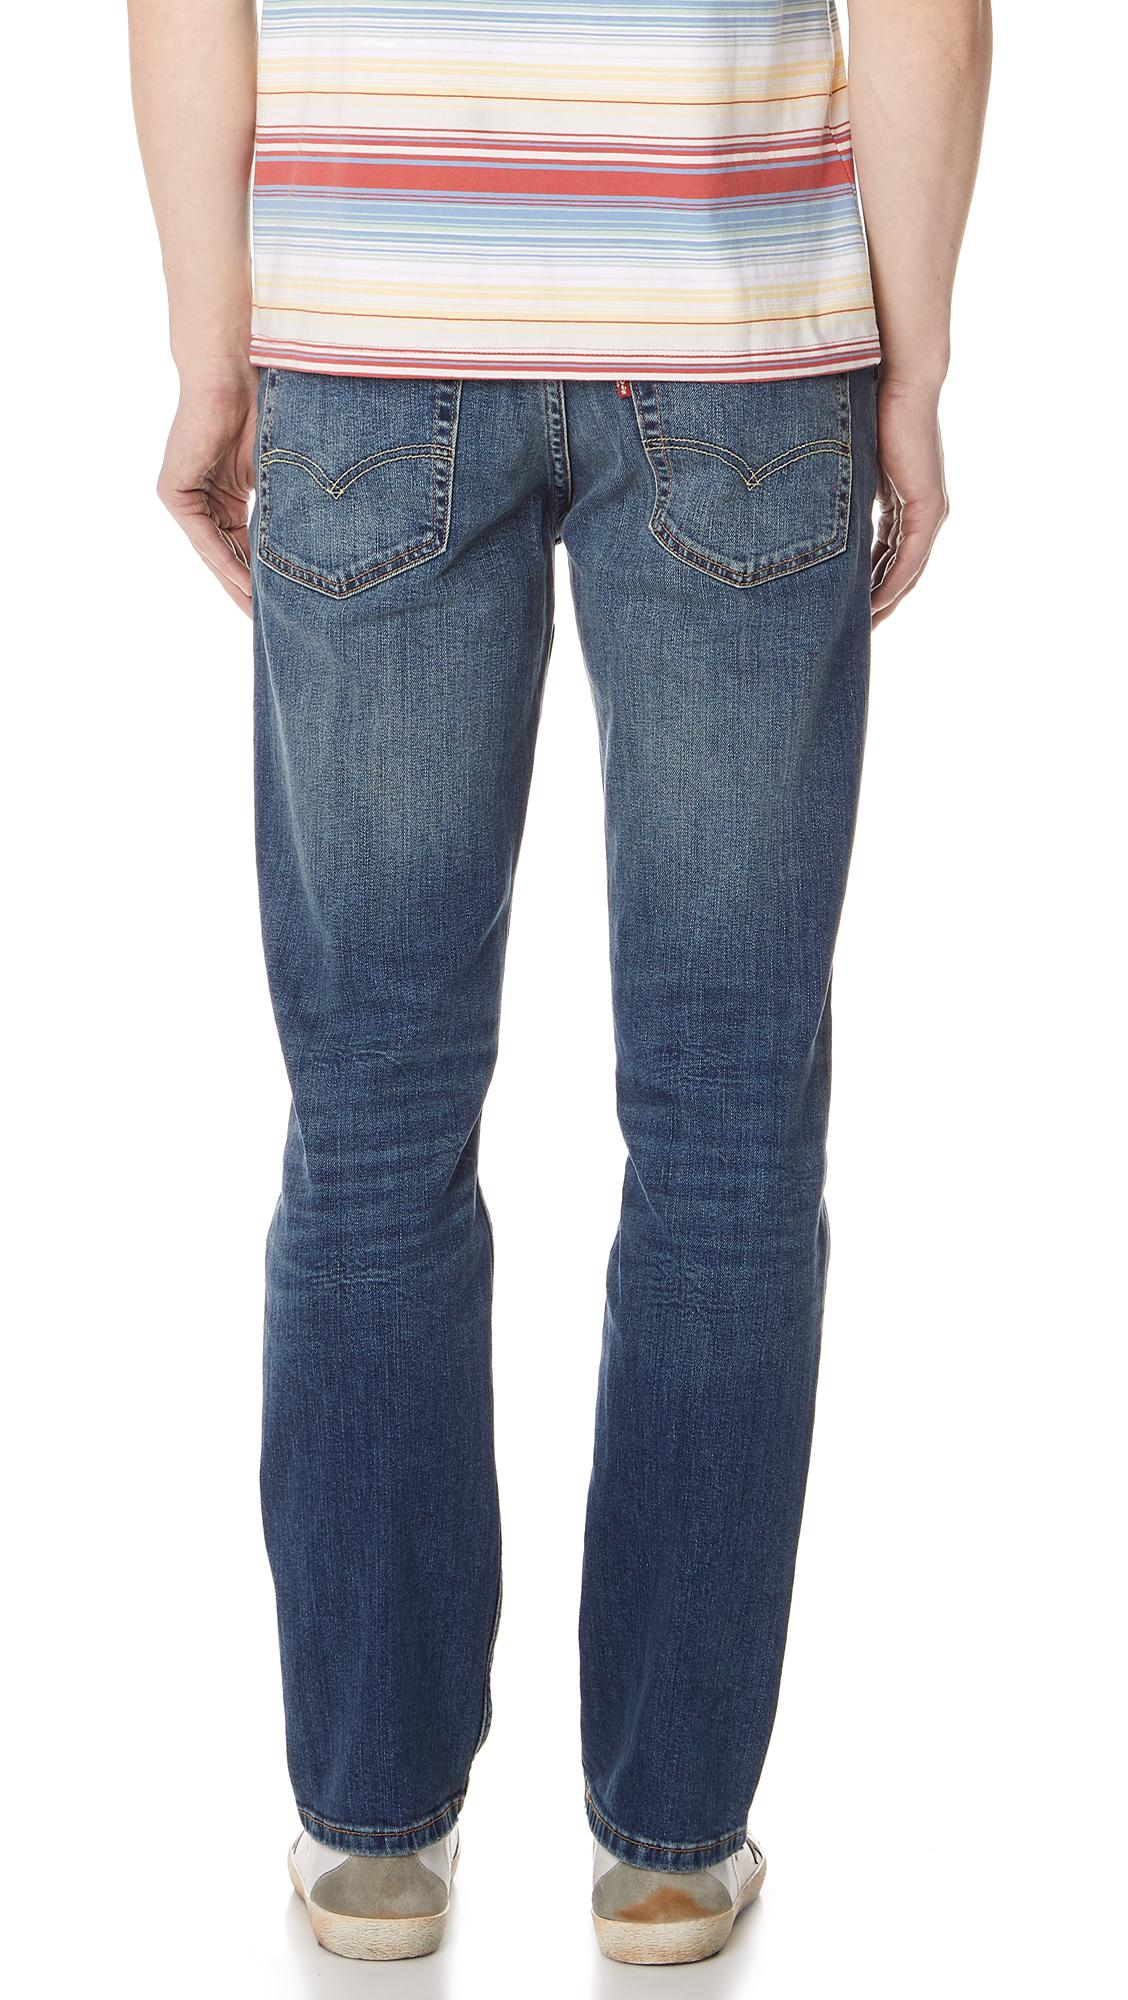 a290cfe9241 Levi'S Emgee 511 Slim Jeans in Blue for Men - Lyst